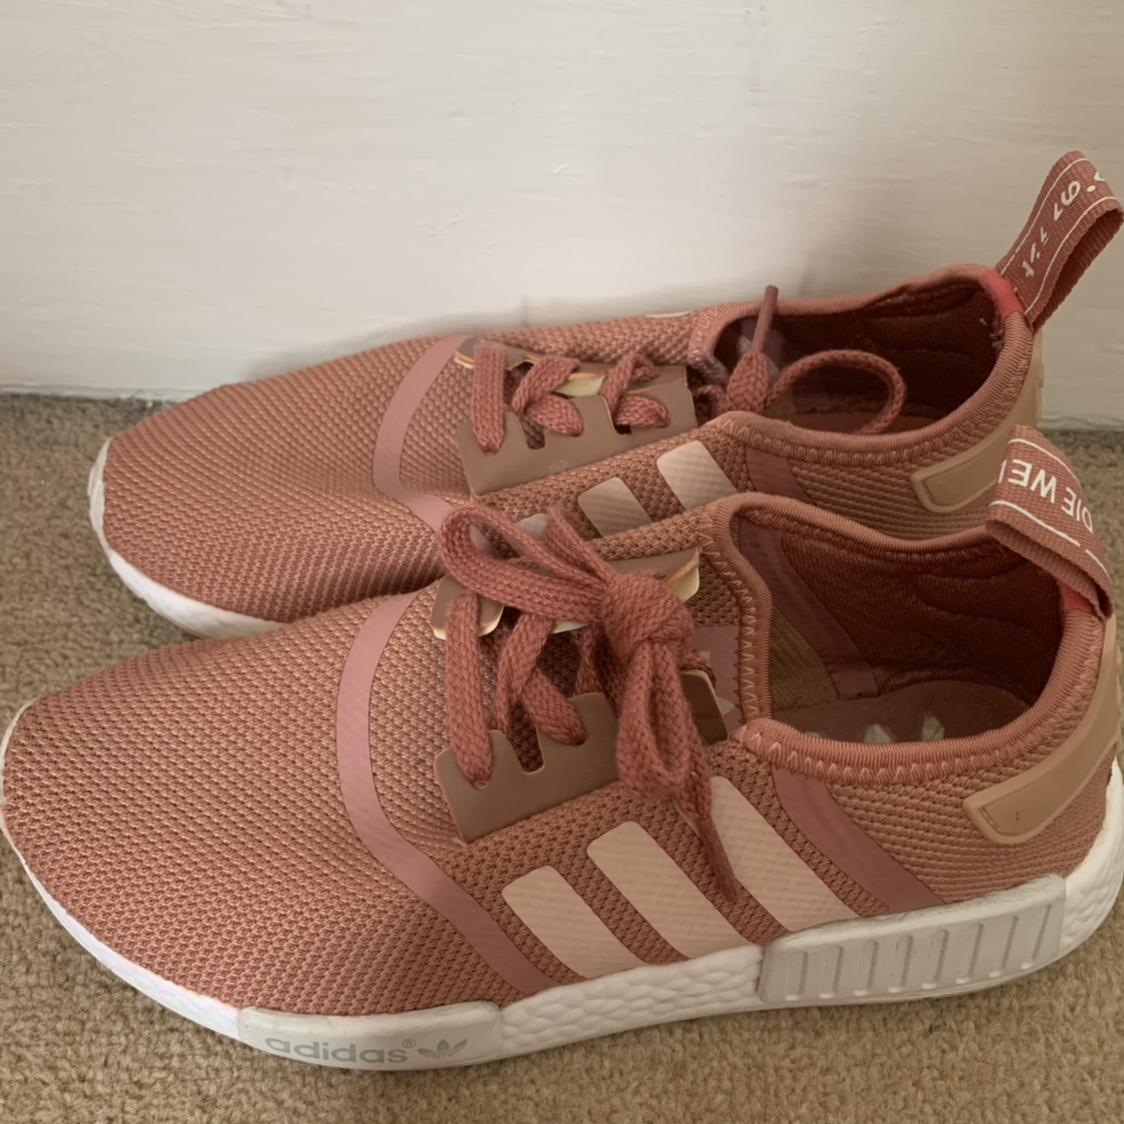 online store 9b3d2 e2cbb Adidas NMDs pink size 6, hardly... - Depop